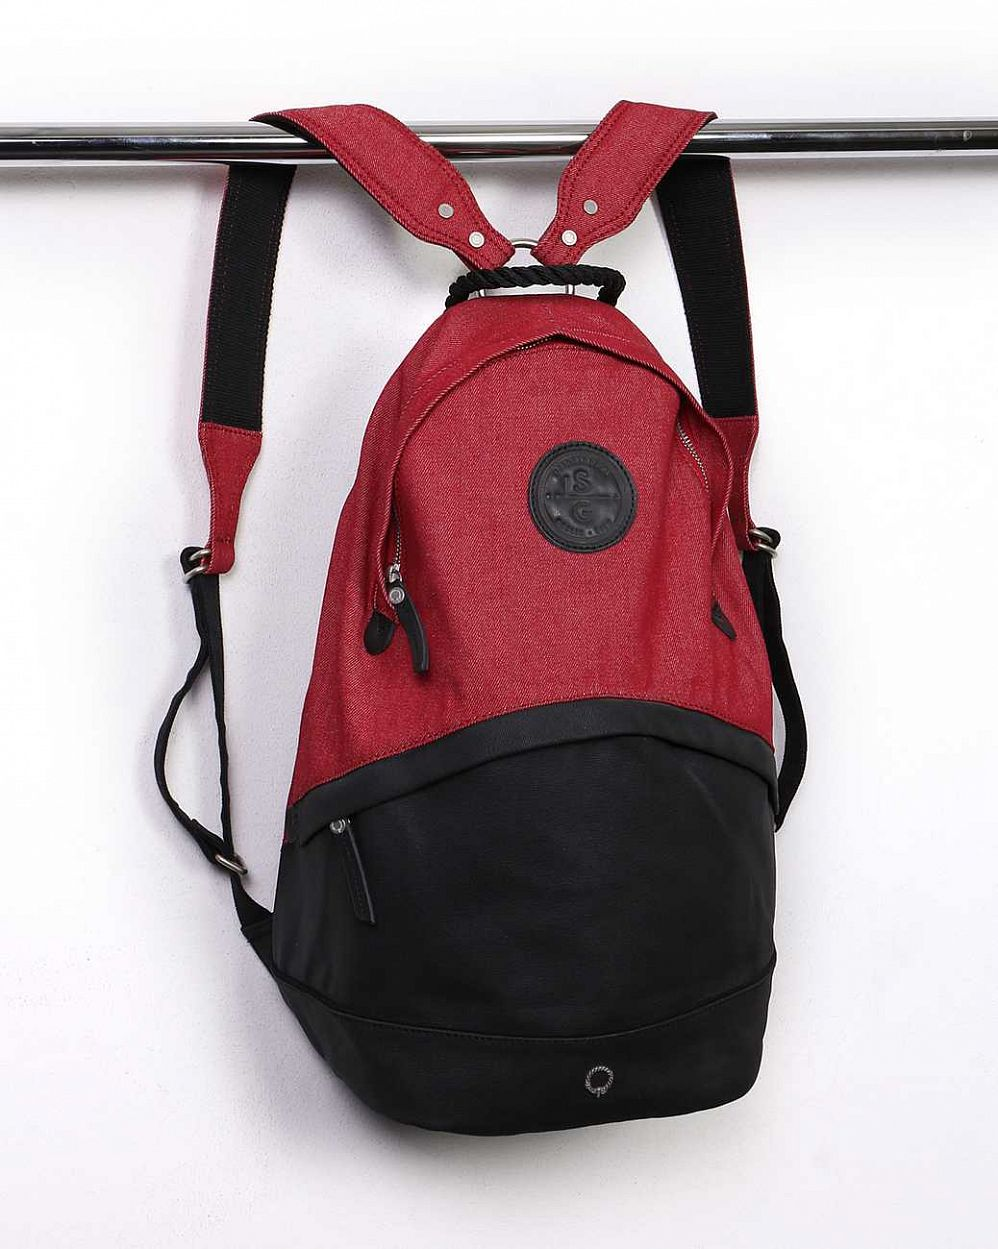 купить Рюкзак Stighlorgan Oisin canvas zip-top backpack Black & red в Москве